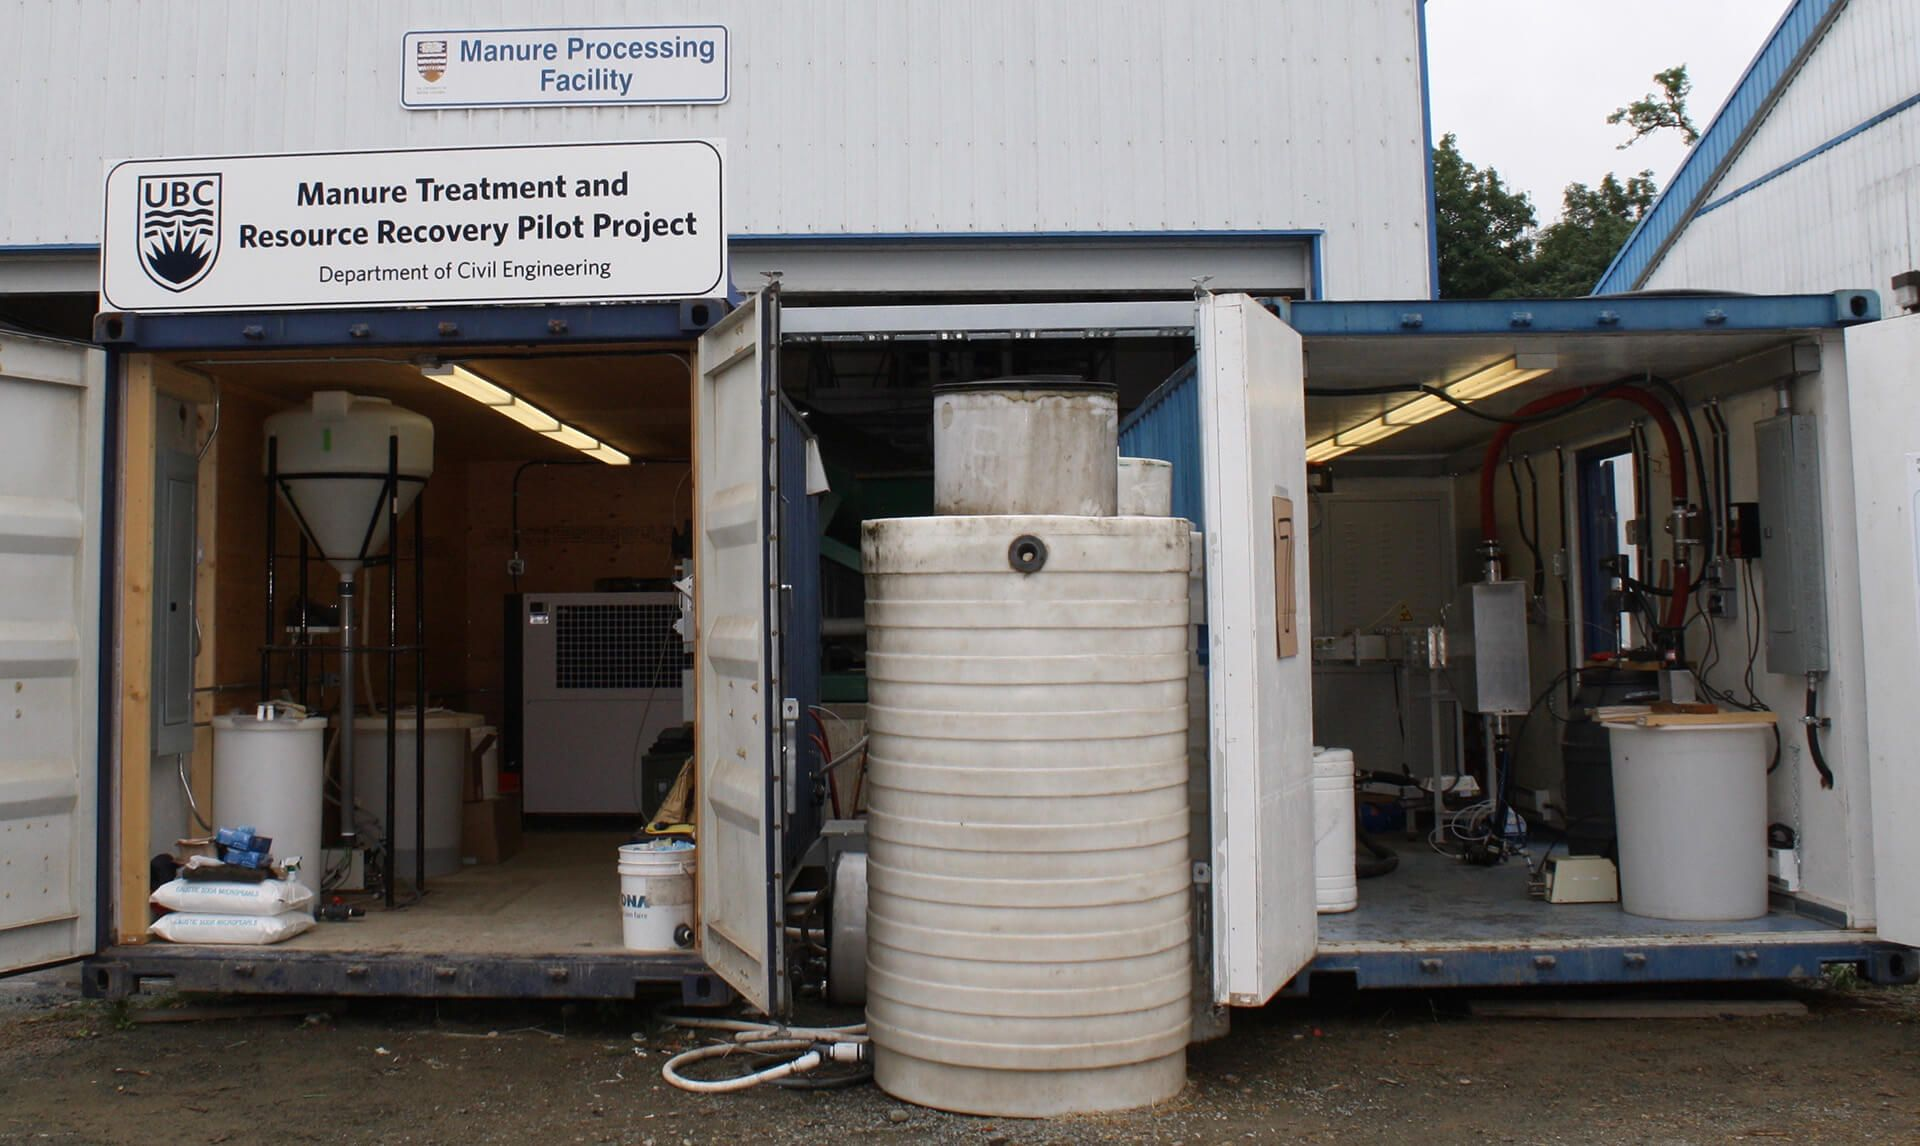 Pilot scale system for treating dairy manure at UBC Research Farm